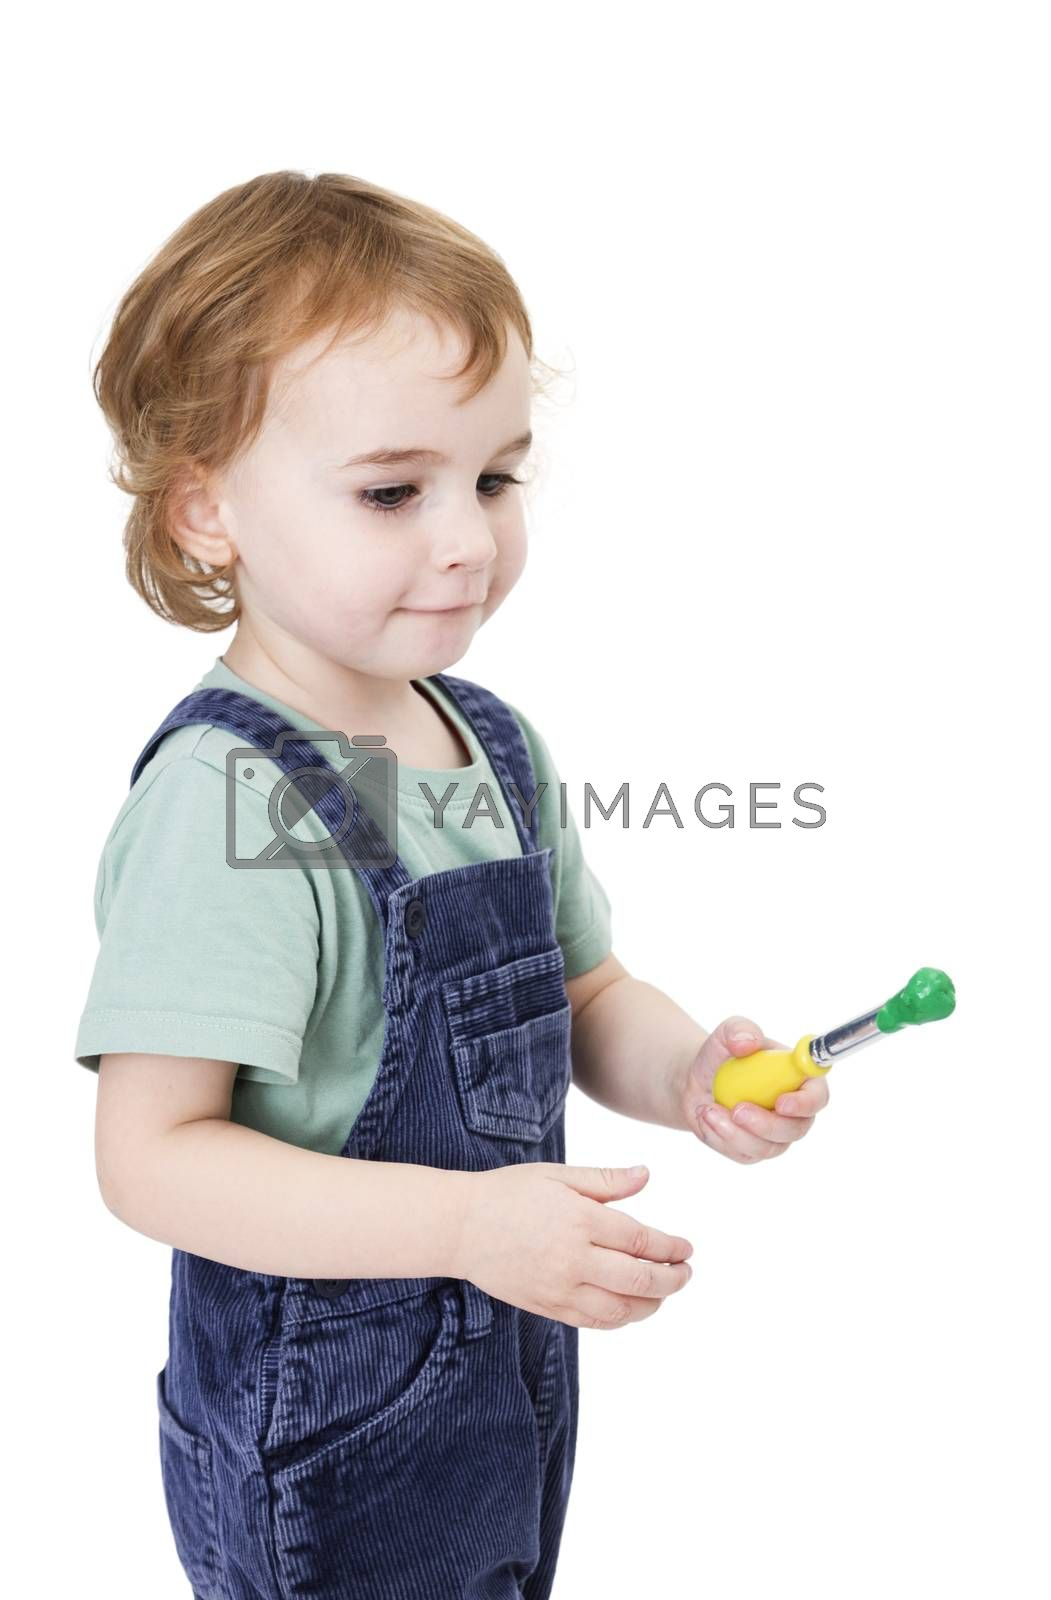 Royalty free image of girl with brush and green paint by gewoldi